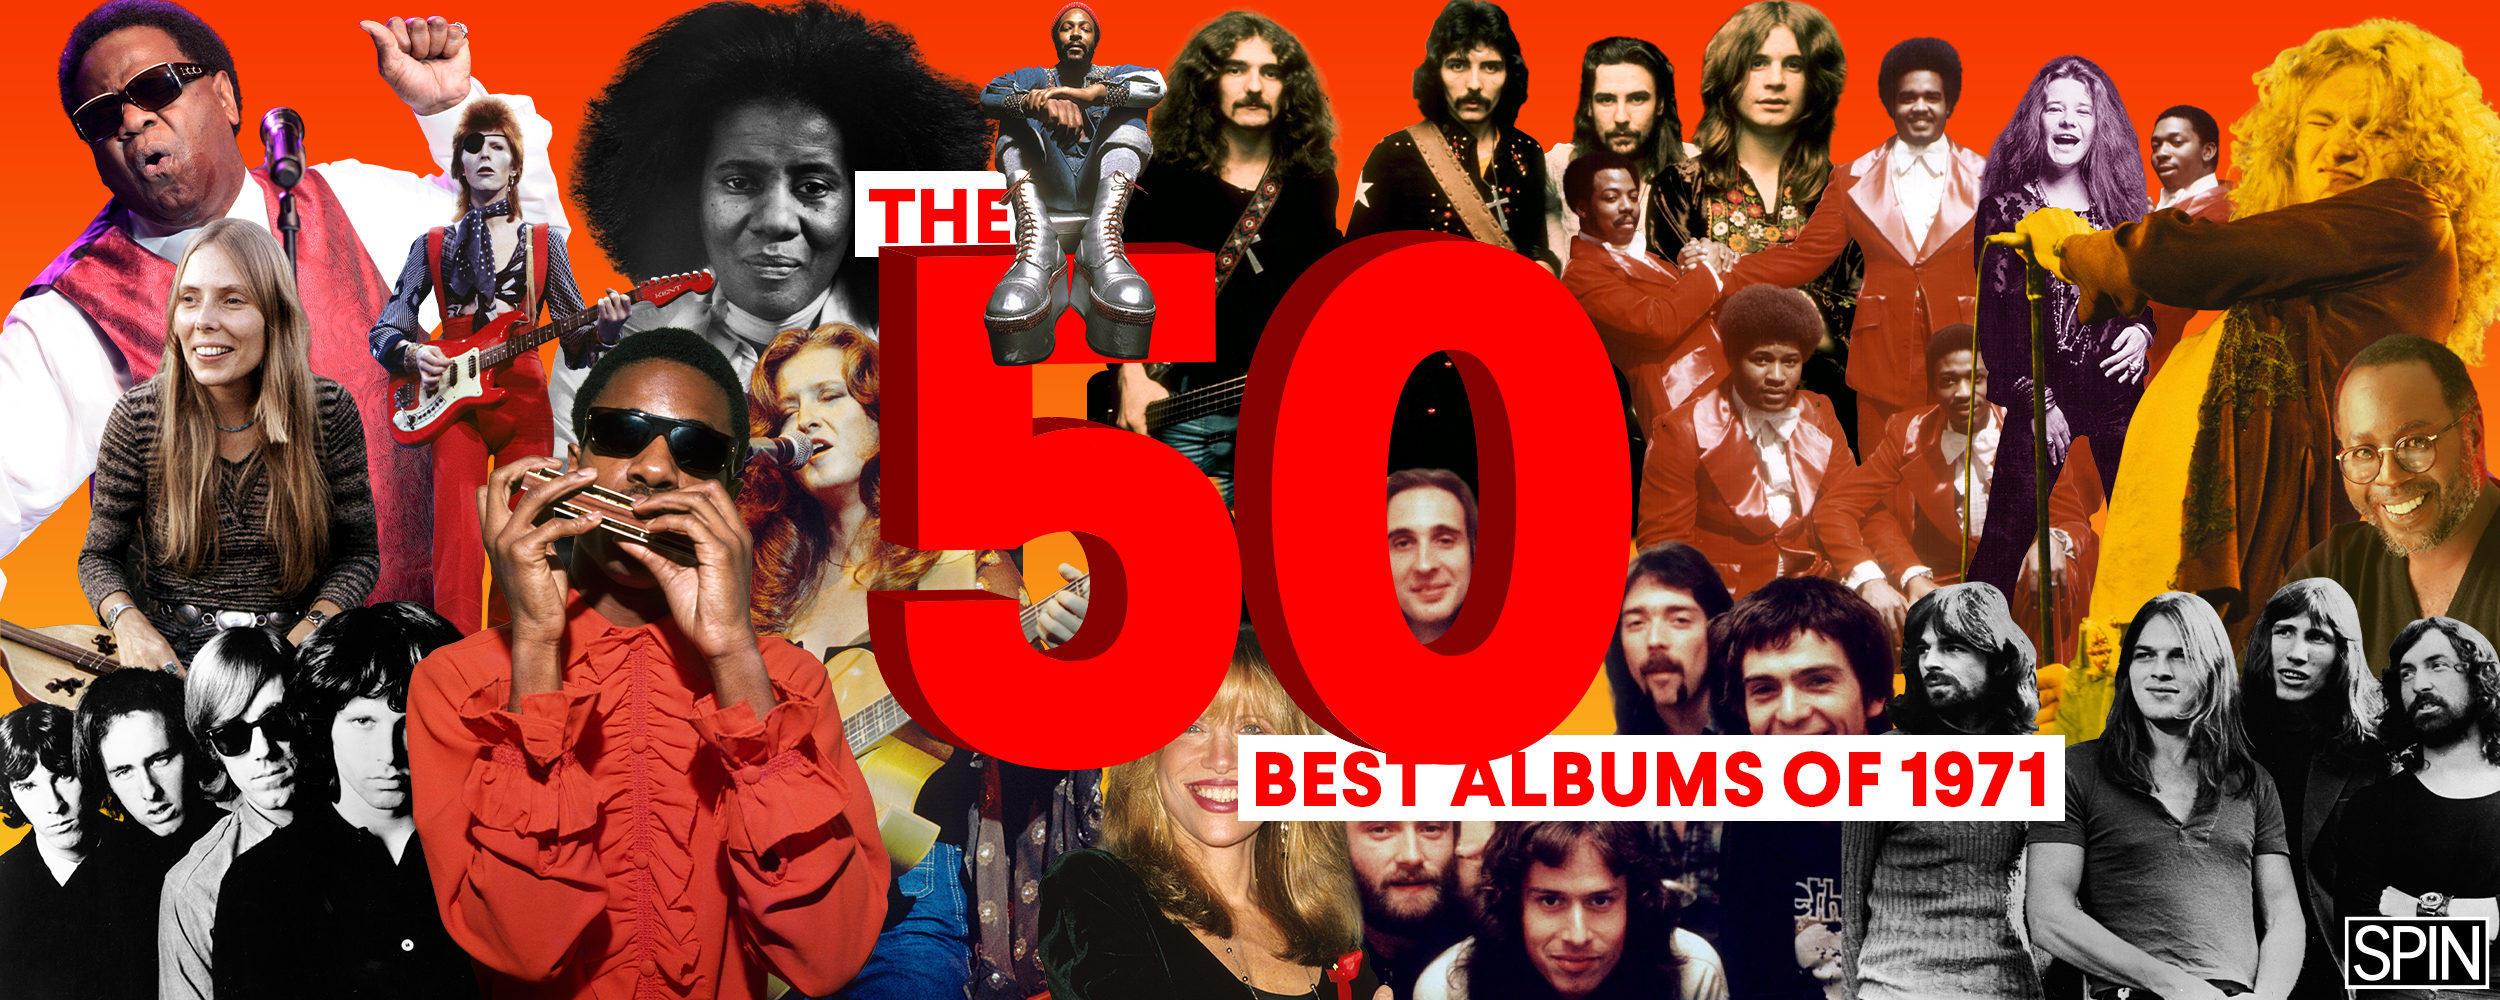 The 50 Best Albums of 1971